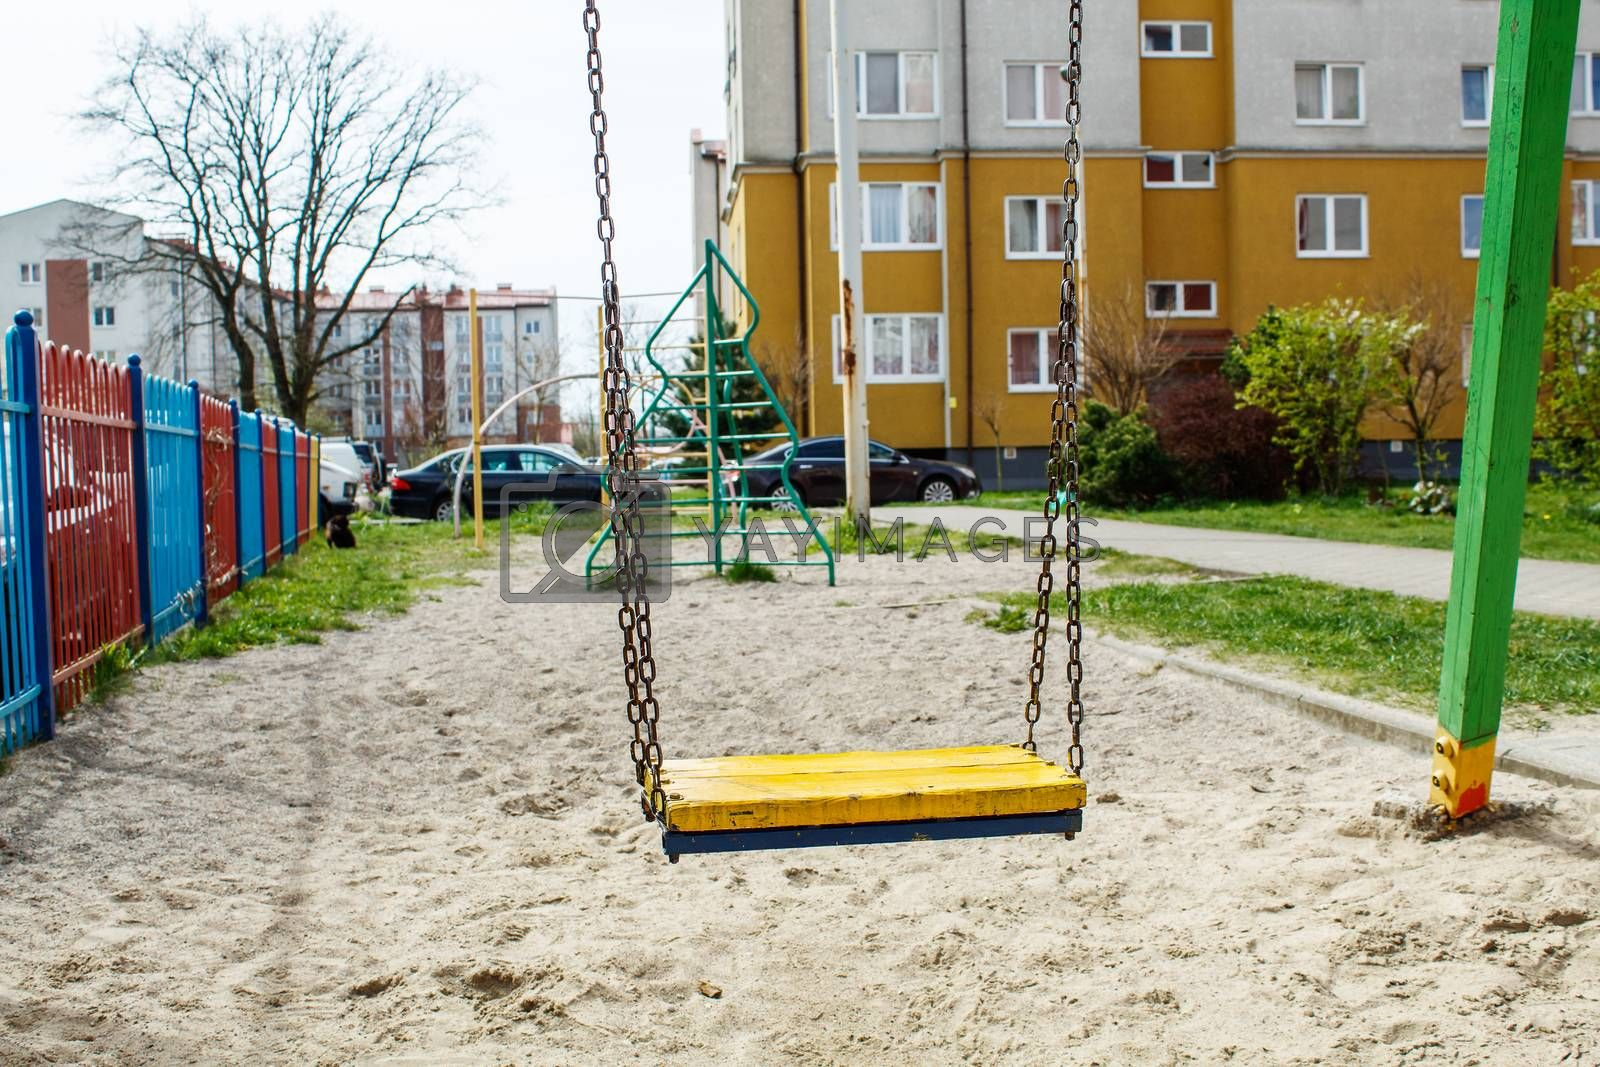 empty swing on quarantined playground on sunny spring day